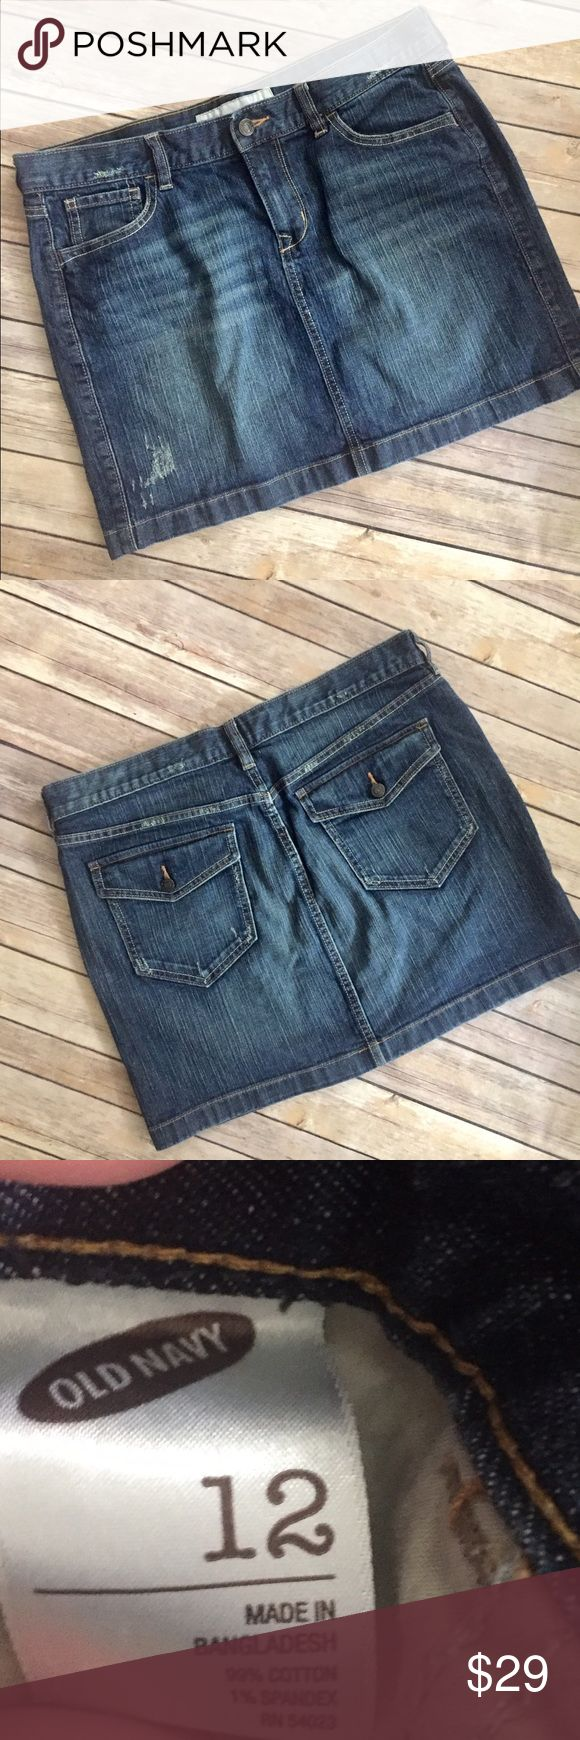 Size 12 Old Navy Distressed Jean Skirt Size 12 Old Navy Distressed Jean Skirt. In excellent condition. Every girl needs a cute jean skirt in their closet!!! Size 12, waist laying flat and length are pictured. No trades. Old Navy Skirts Mini